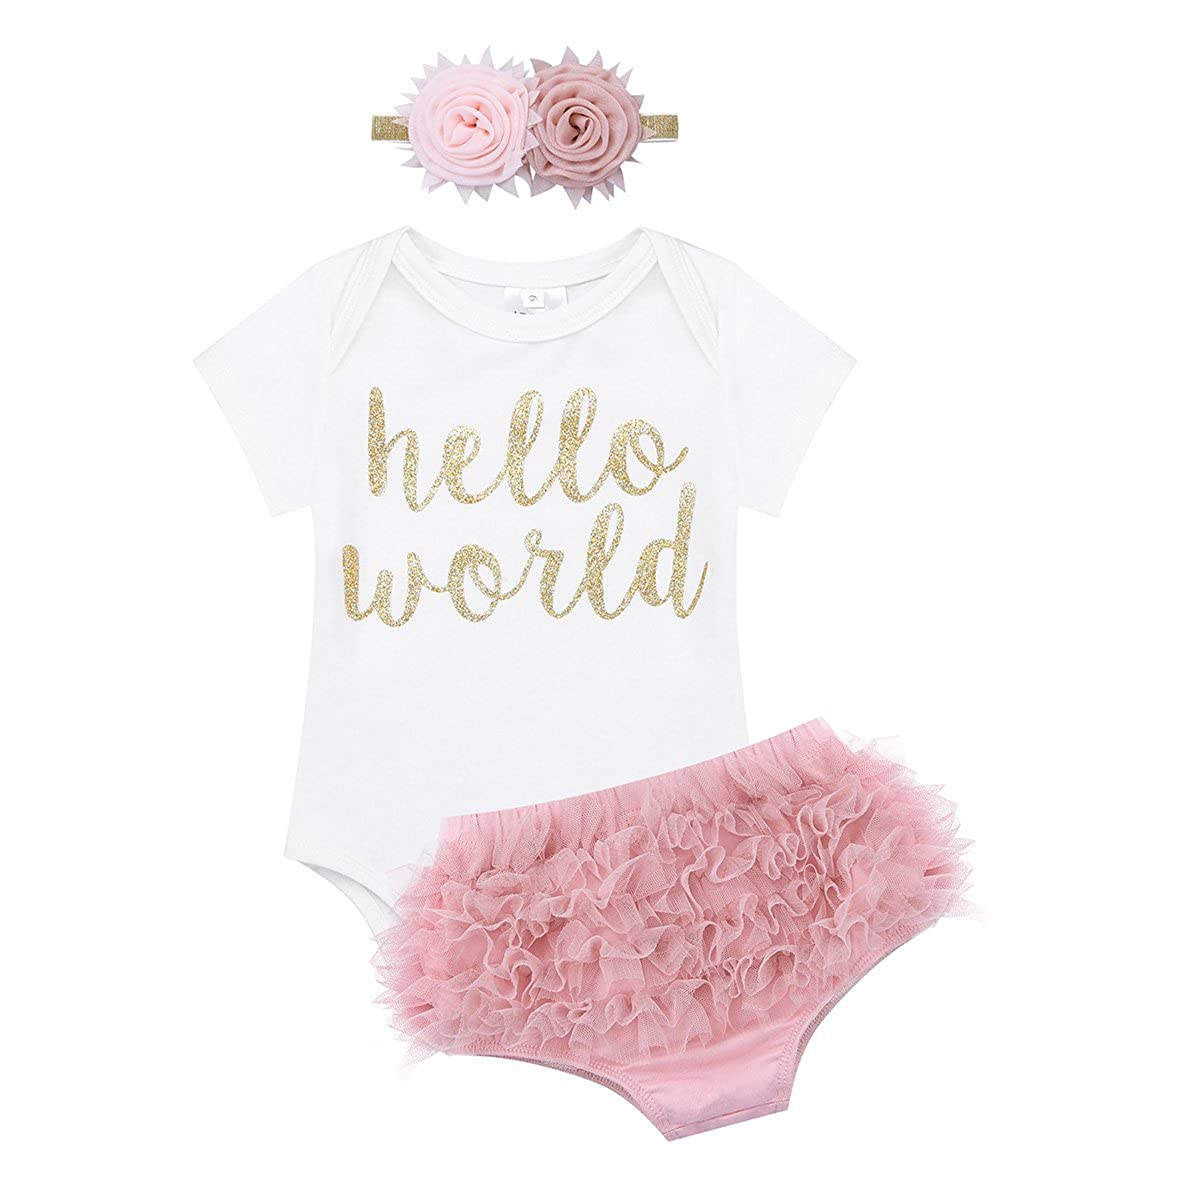 TiaoBug Infant Baby Girls Hello World Outfit Short Sleeves Romper with Ruffle Tutu Bloomers Shorts Headband Clothes Set Photo Shoots